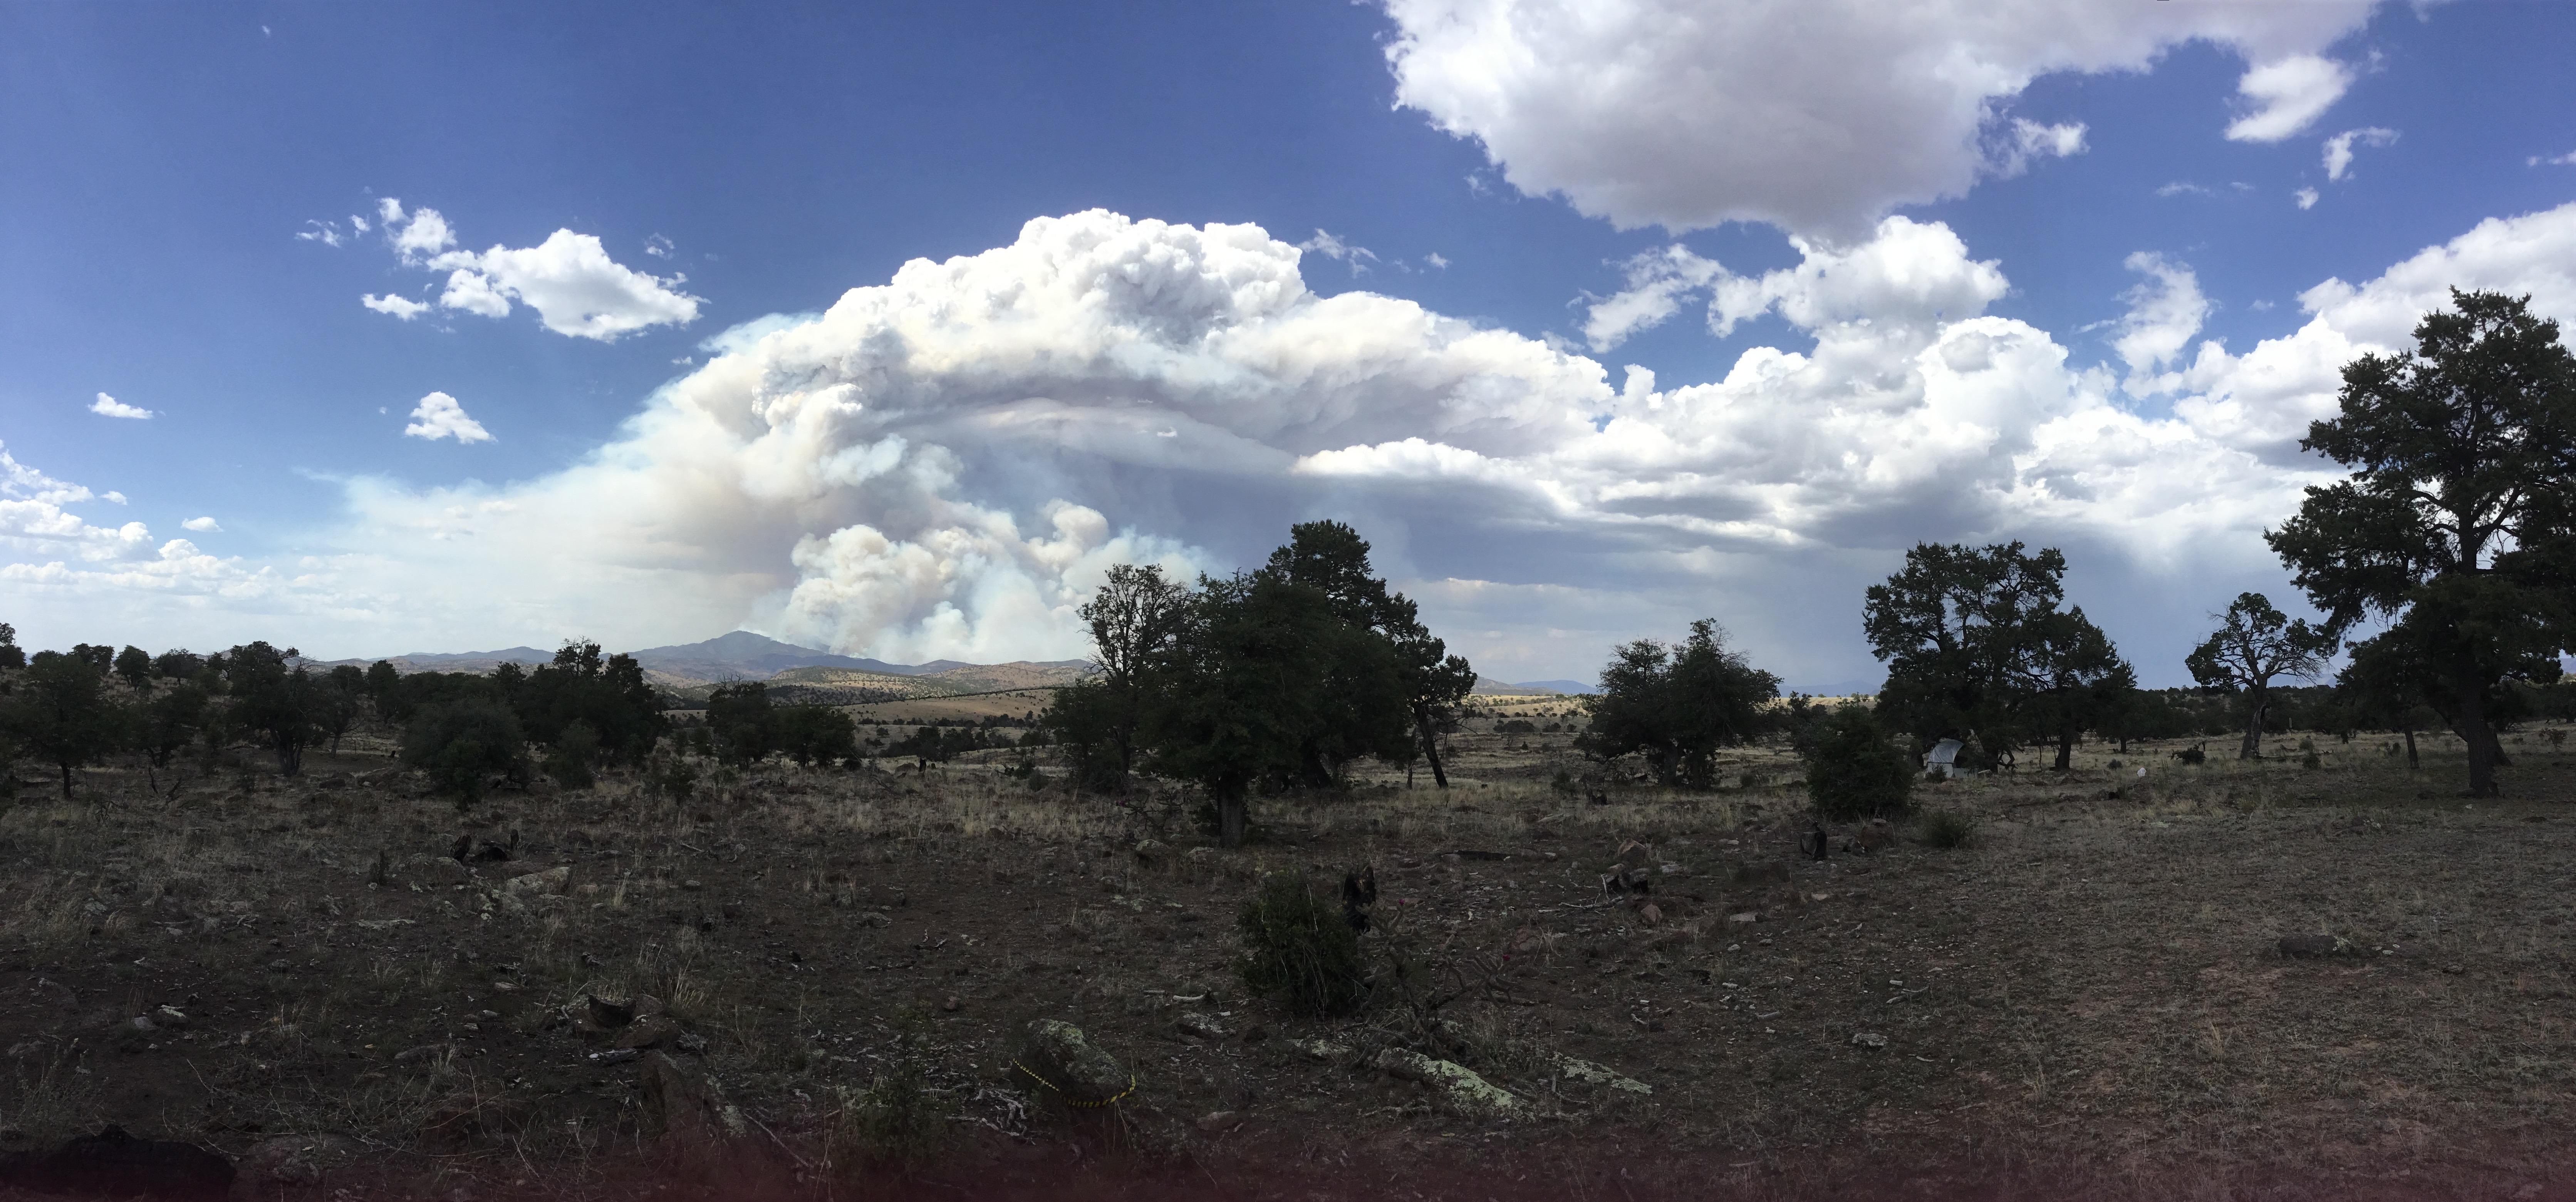 Daytime photo of a desert landscape. Blue sky with clouds. Brown and green landscape.  A mountain distantly in the background with a large column of grey and white smoke billowing up into the sky, expanding, and filling the sky with smoke.